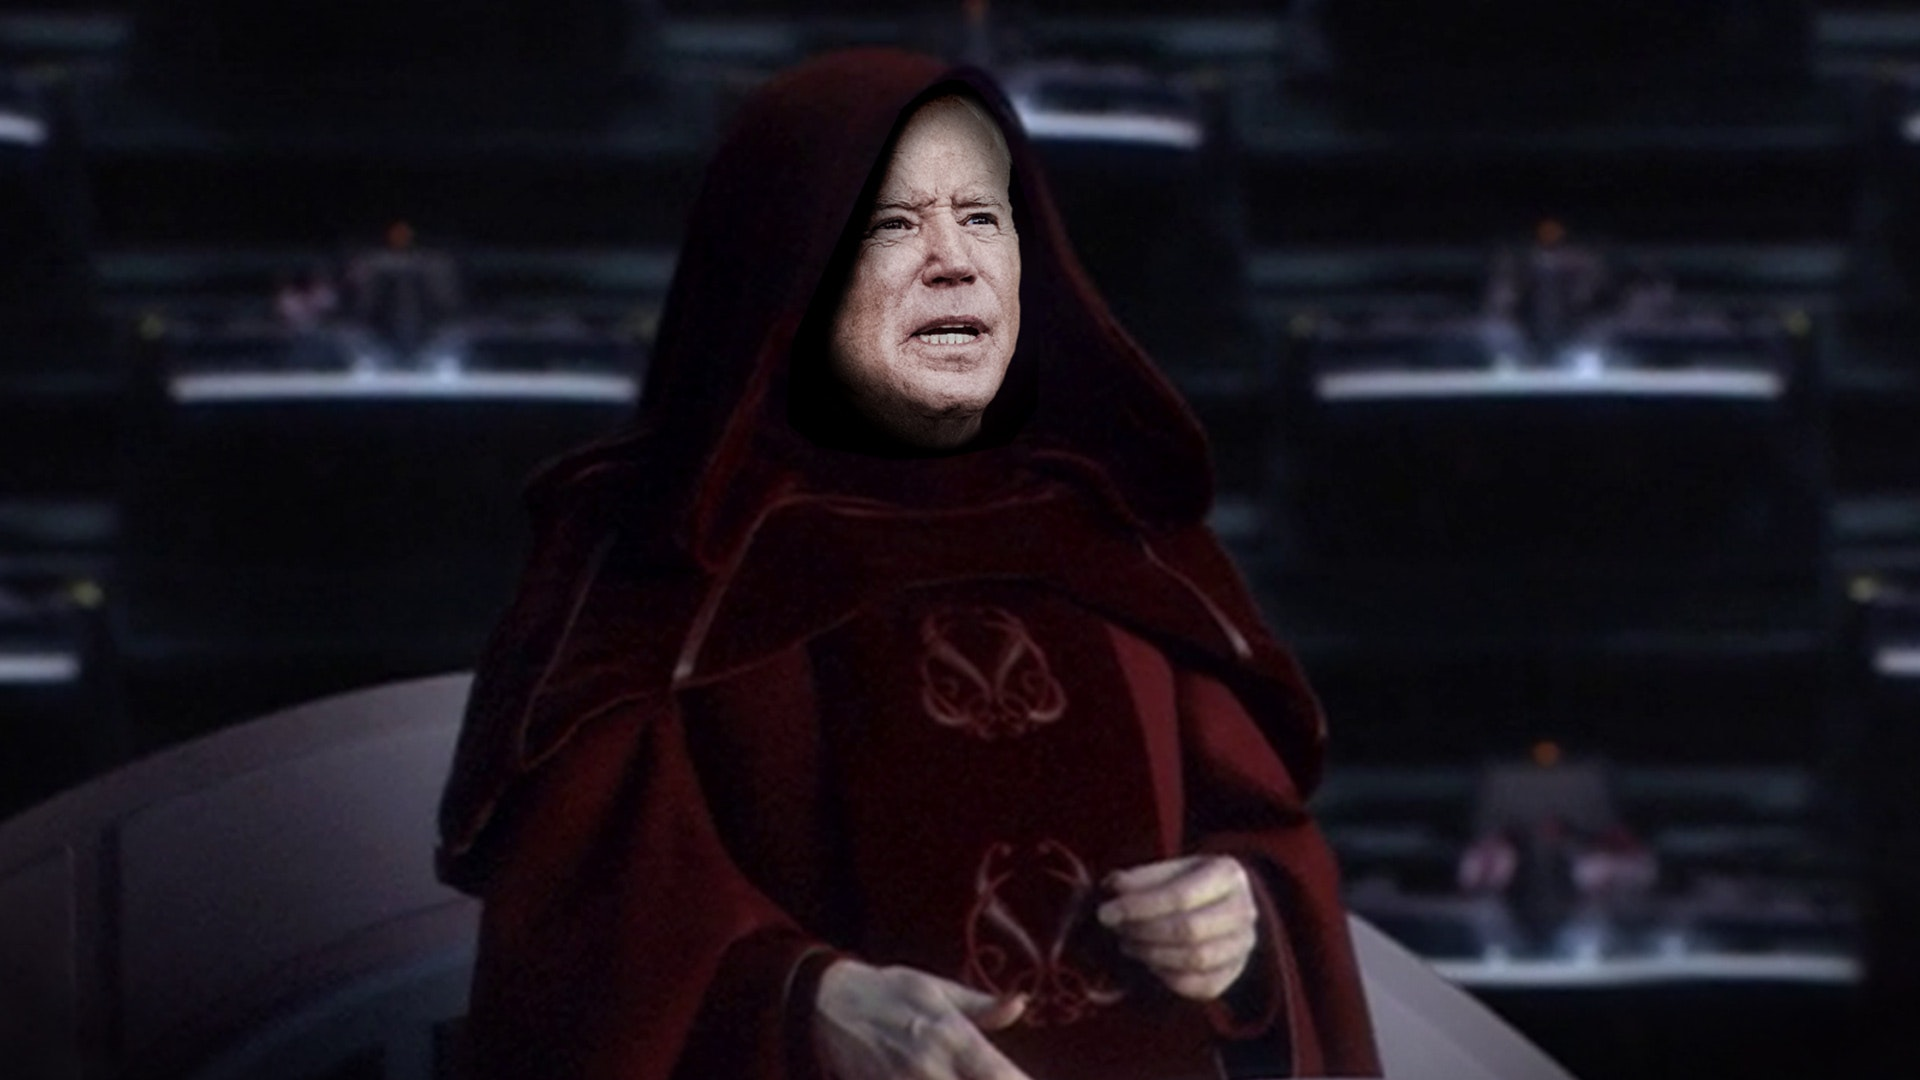 Ep. 840 -So This Is How Liberty Dies?